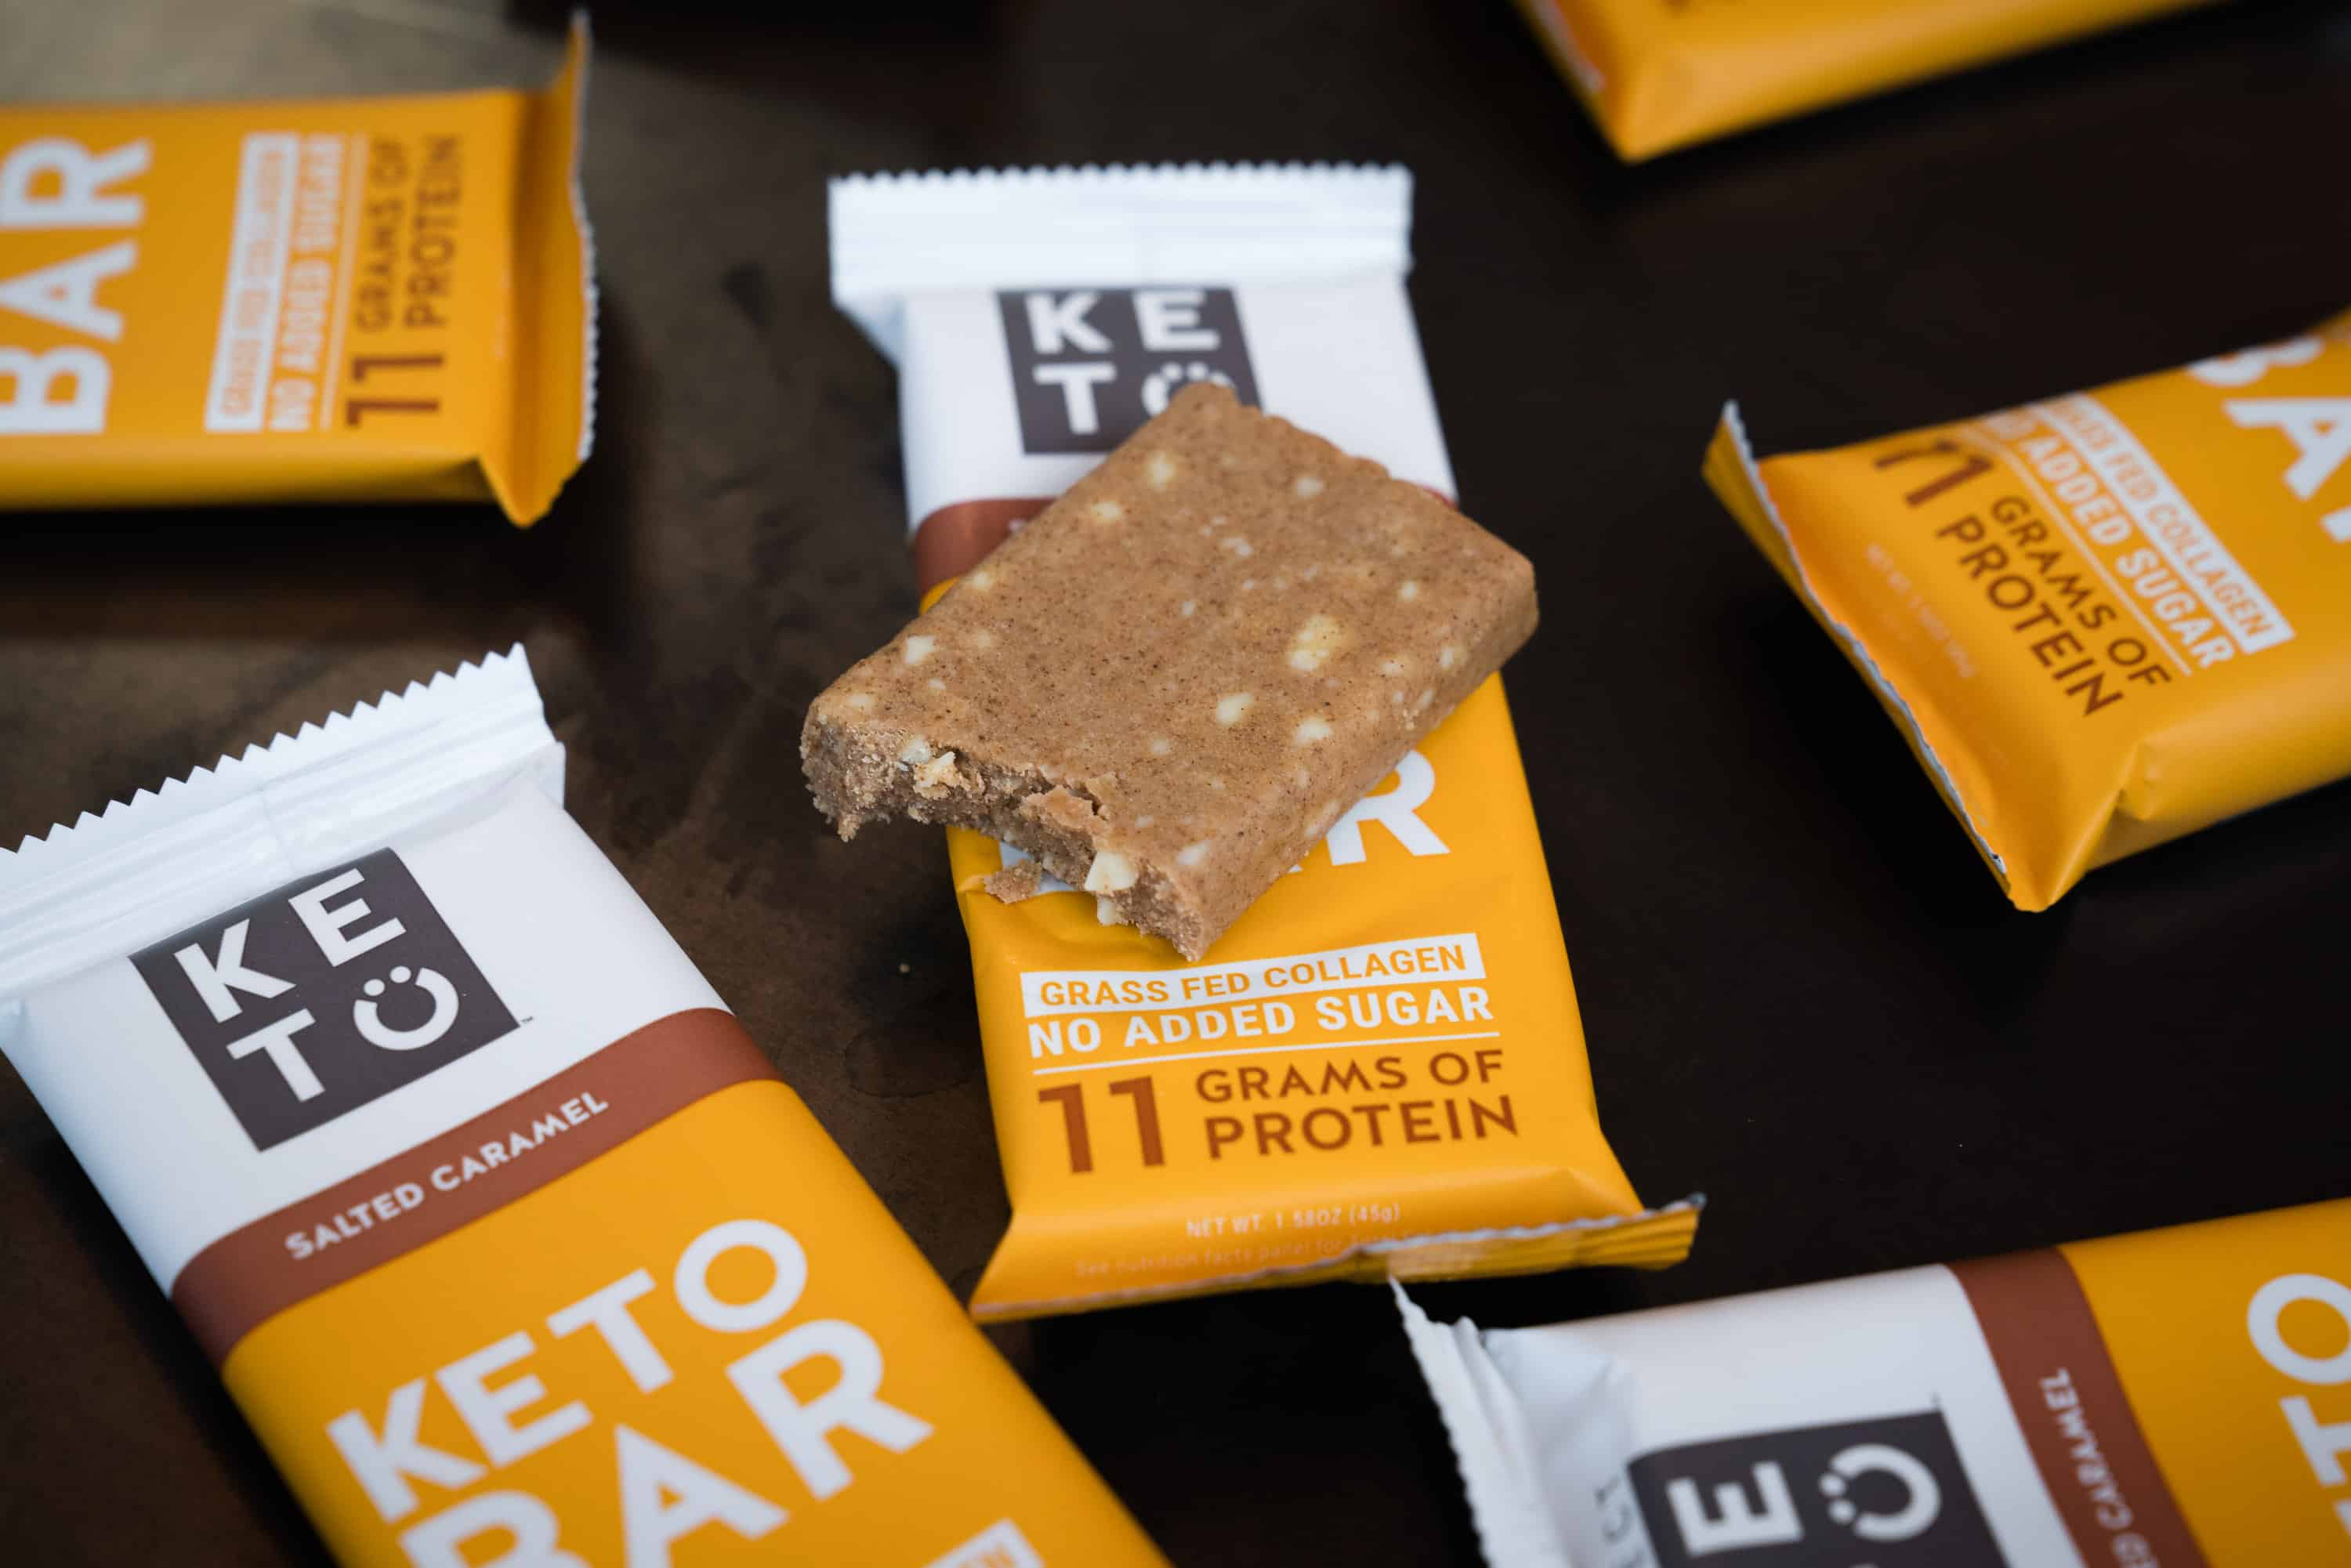 An assortment of Perfect Keto NEW Keto Bars in Lemon Poppyseed & Salted Caramel, with Discount Code